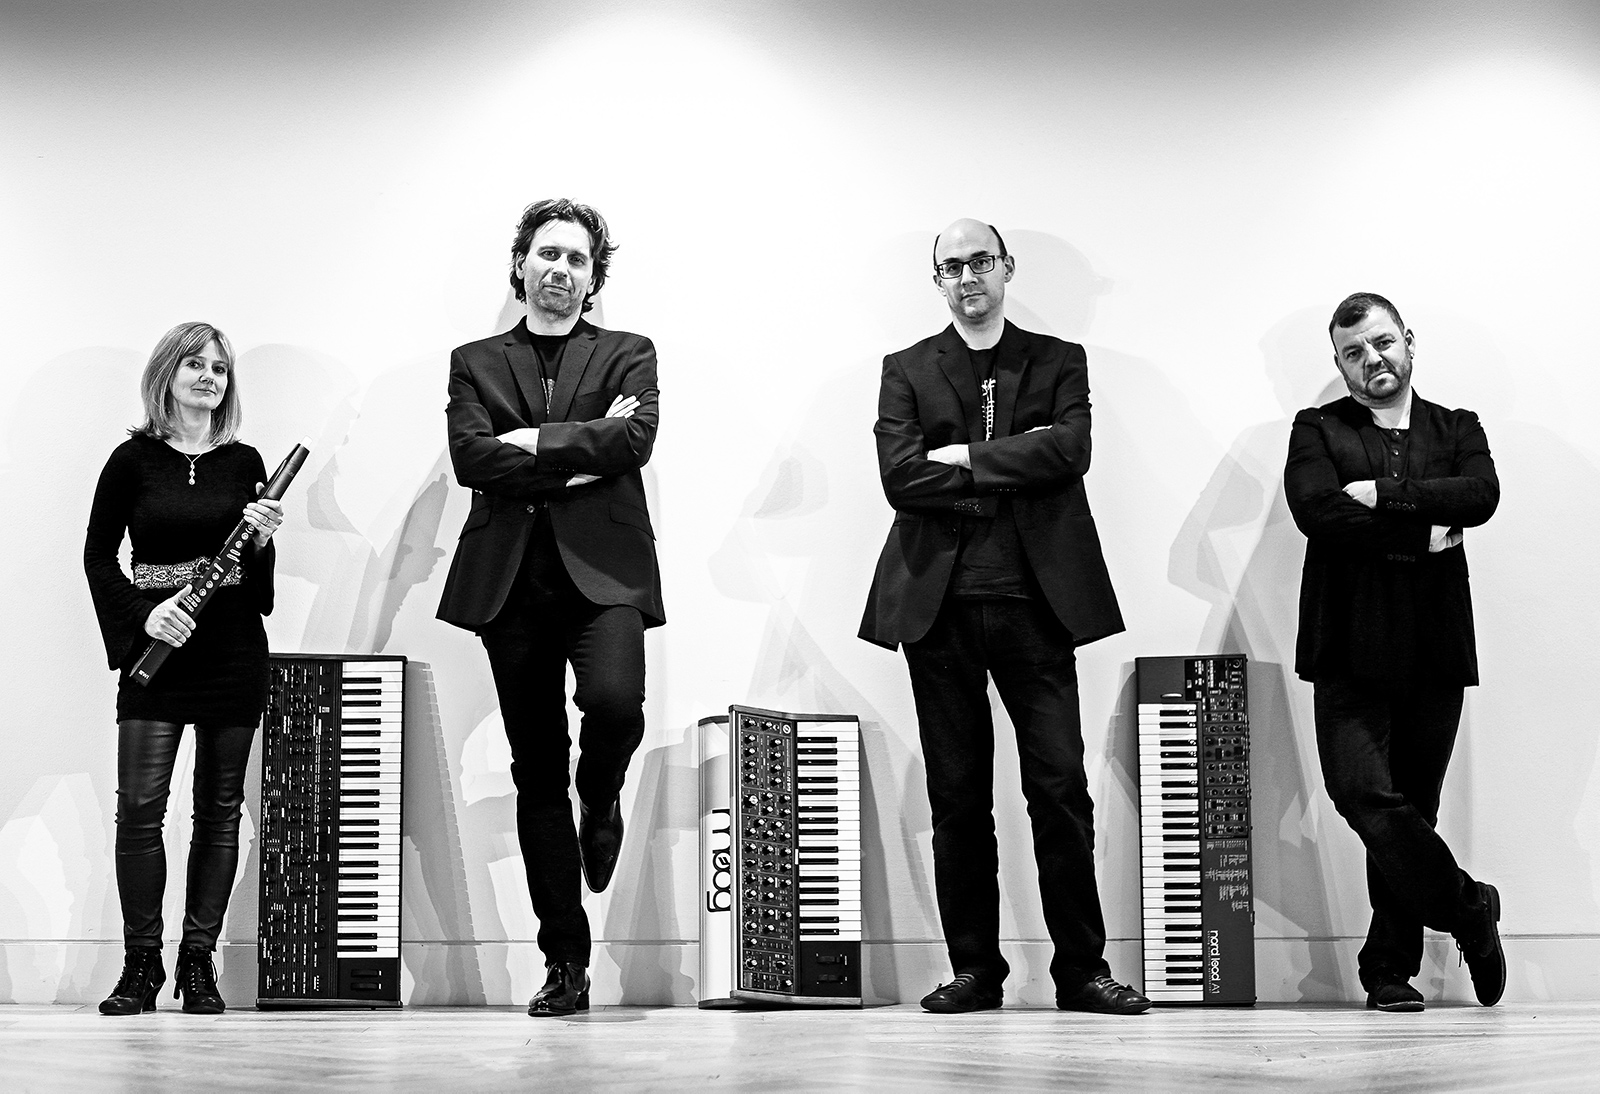 Art of Moog members standing against a wall with synthesizers between them